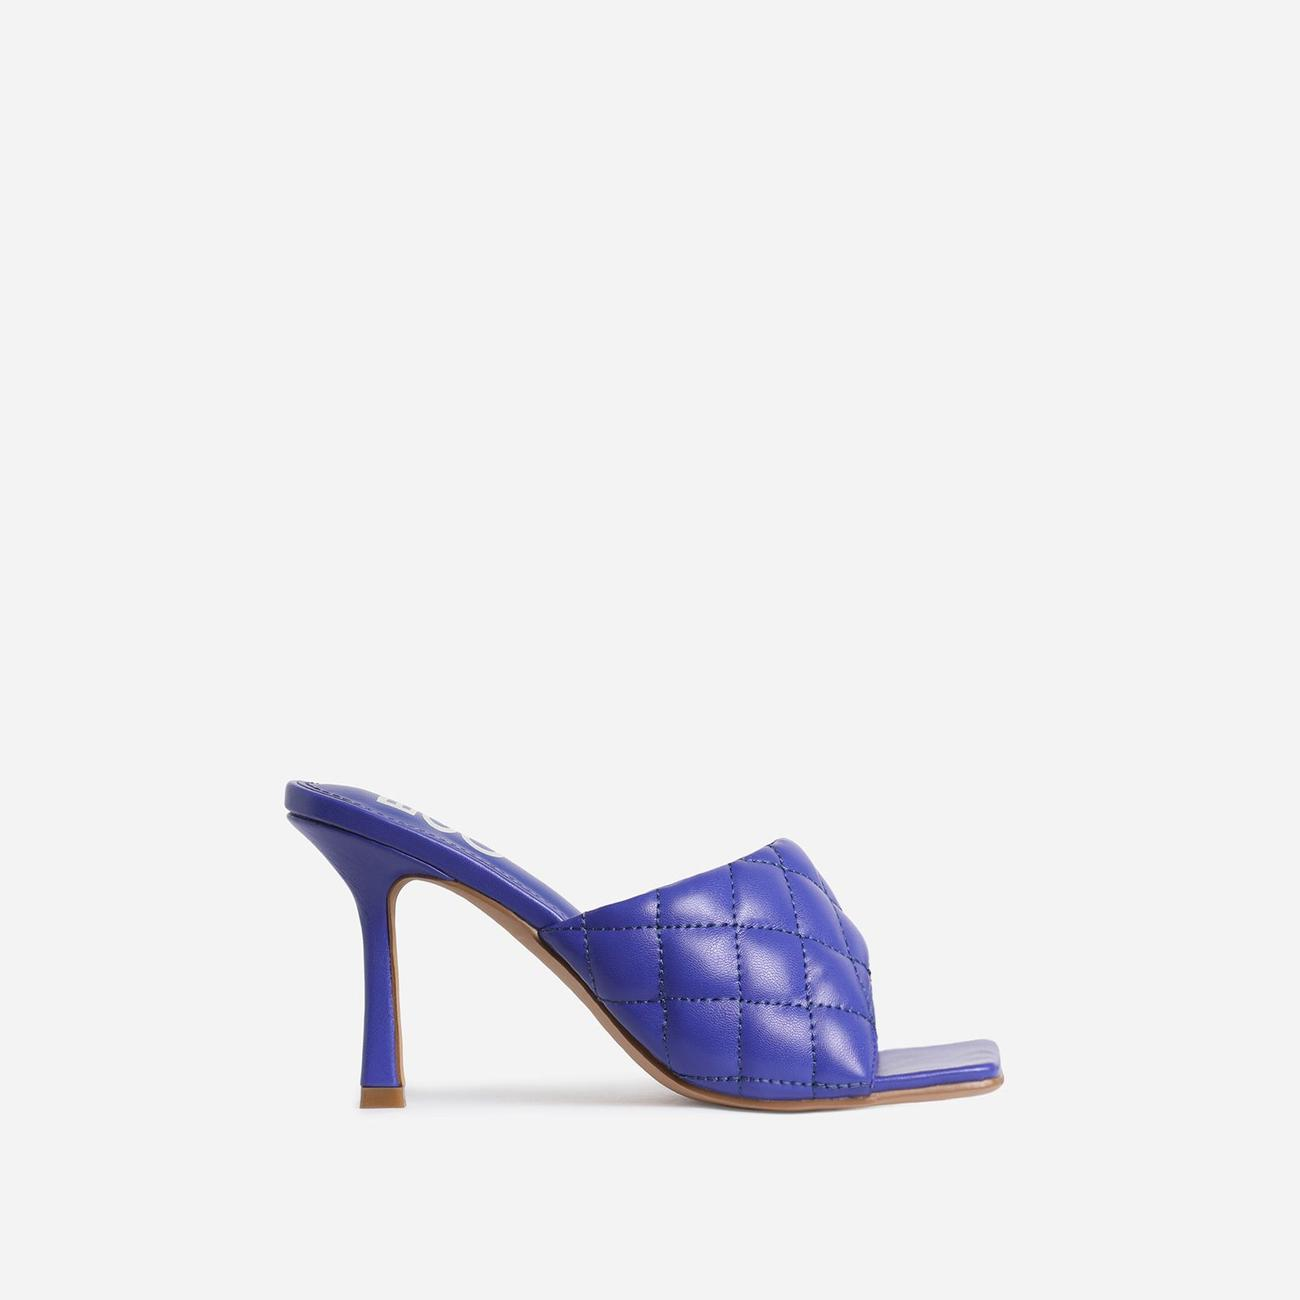 Tropez Square Toe Quilted Heel Mule In Purple Faux Leather Image 1